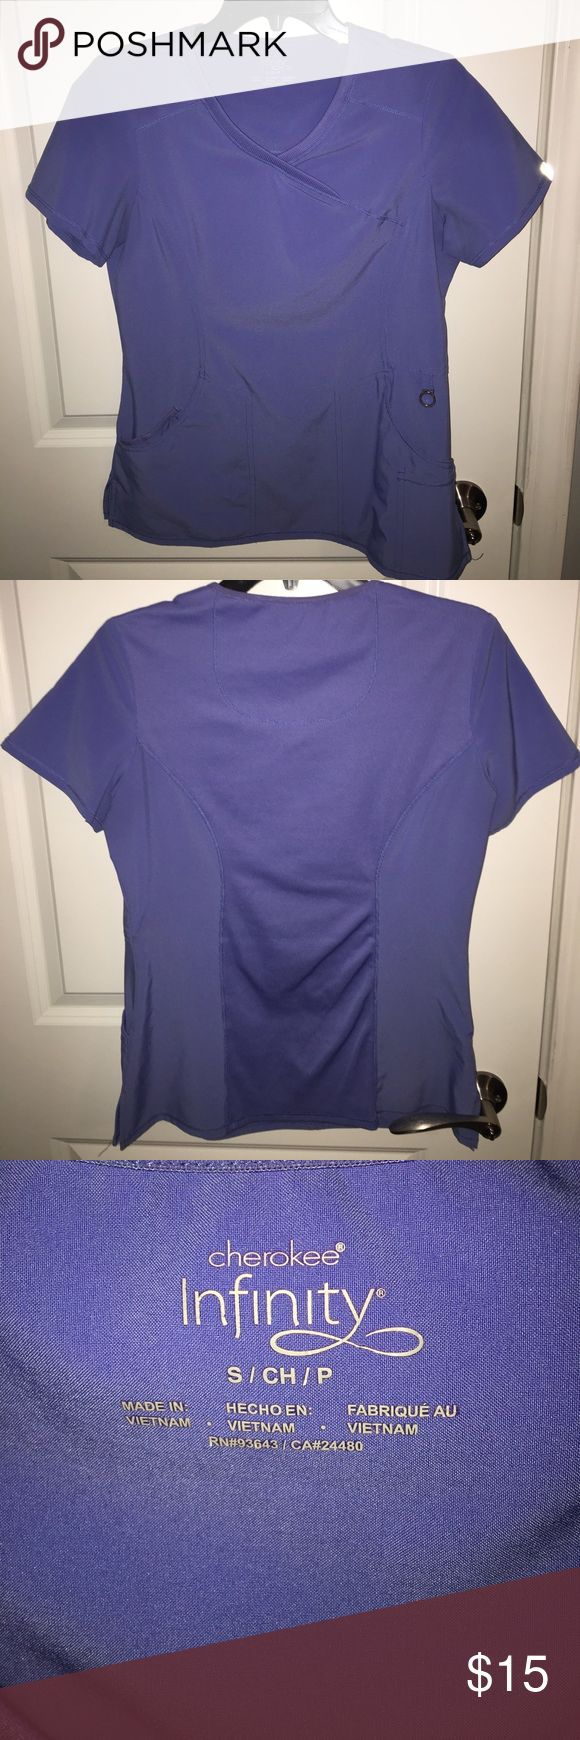 Cherokee Infinity Seal Blue Women's Scrub Top. Gently used Cherokee Infinity Women's Seal Blue Scrub top size small. I have 2 of these available for sale. Cherokee infinity Other